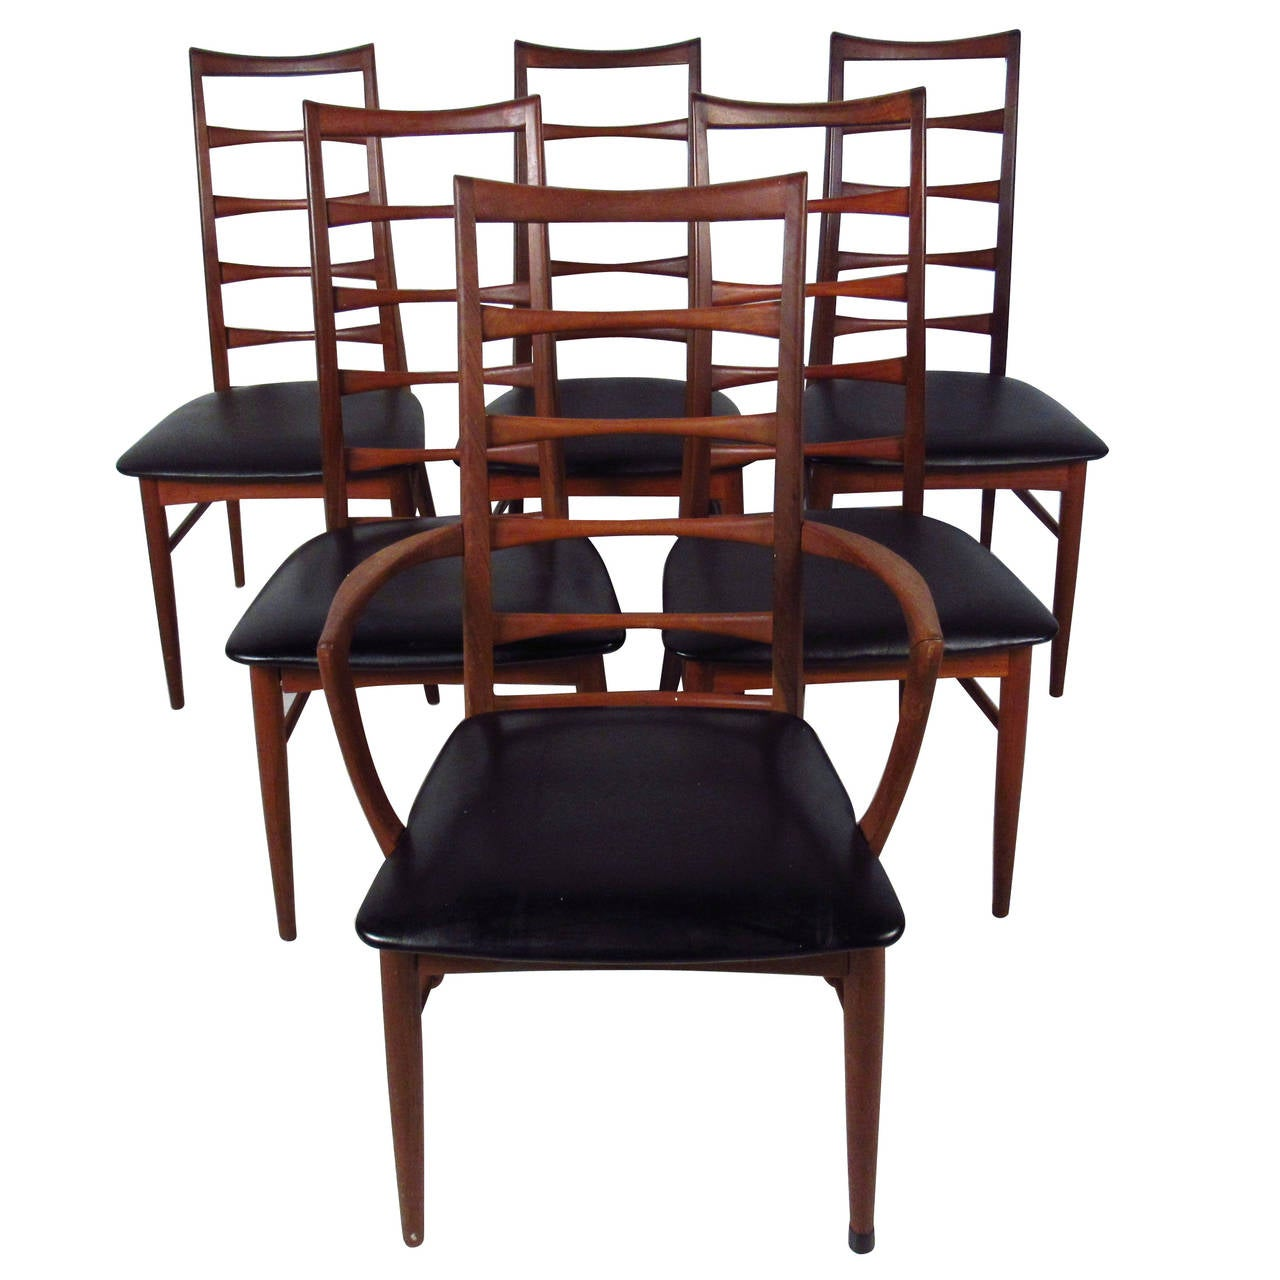 Set of ladder back dining chairs by koefoeds hornslet for sale at 1stdibs - Ladder back dining room chairs ...